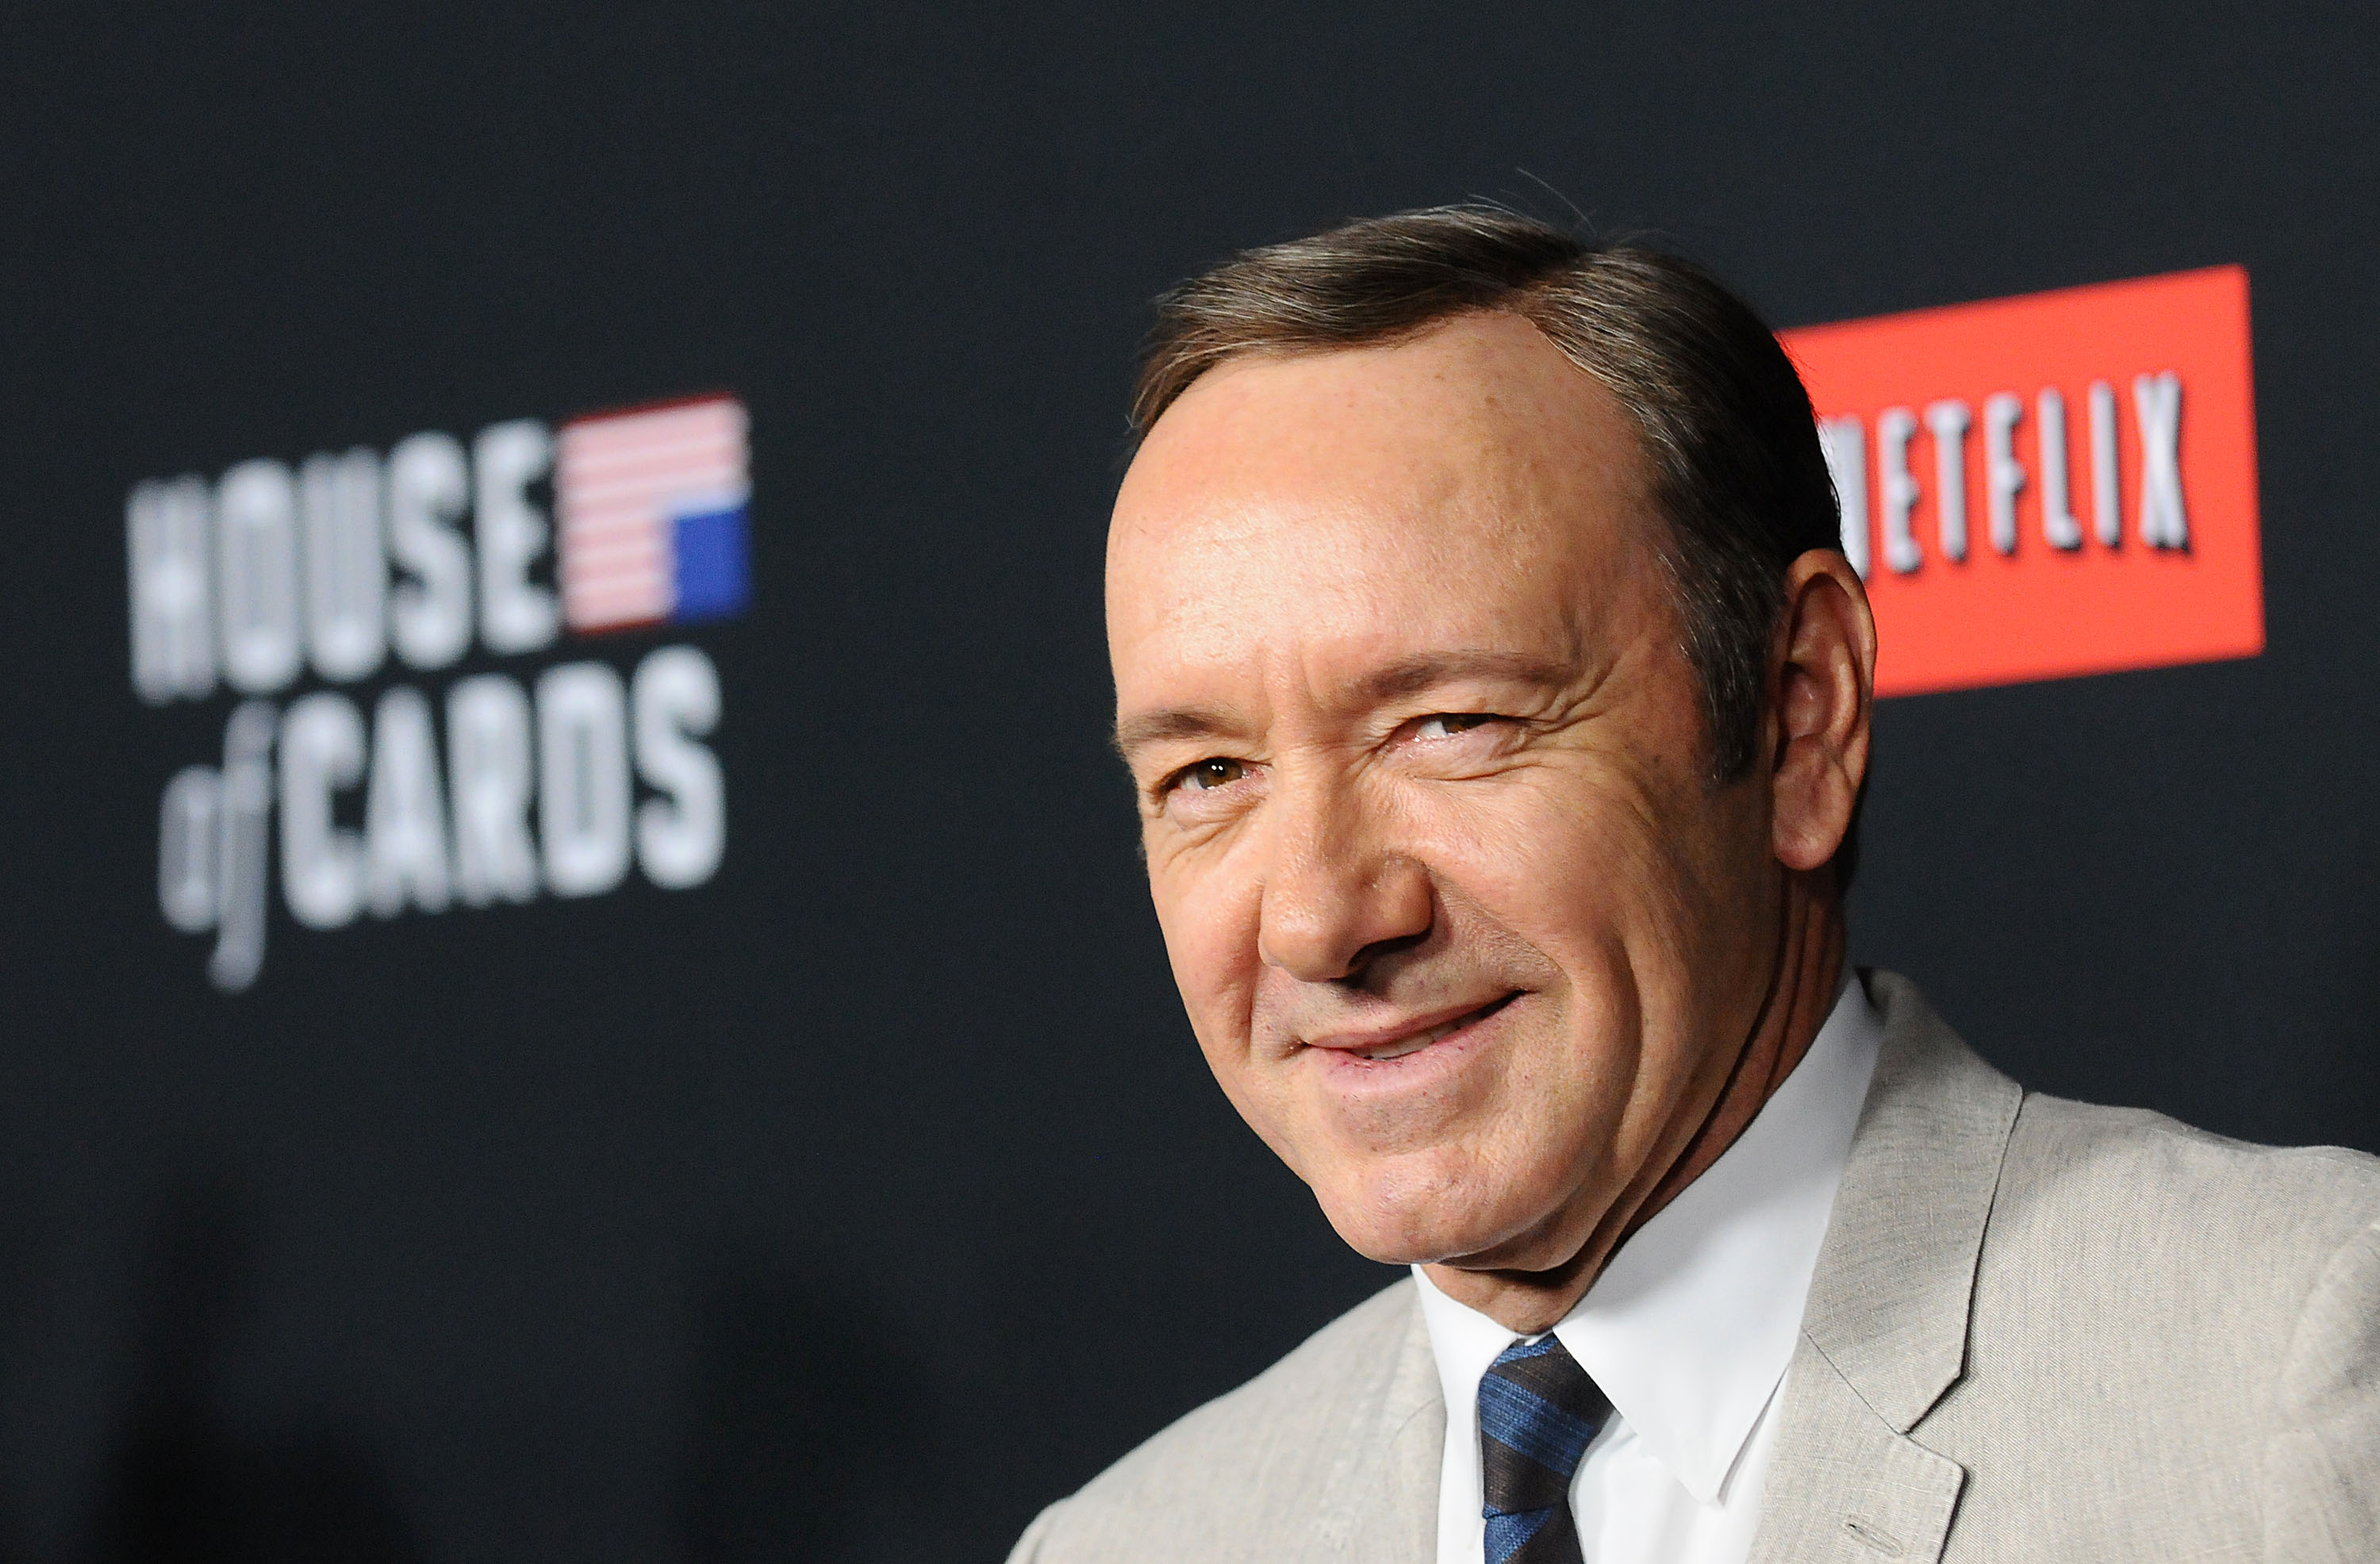 Actor Kevin Spacey attends a screening of  House Of Cards  at Directors Guild Of America on February 13, 2014 in Los Angeles, California.